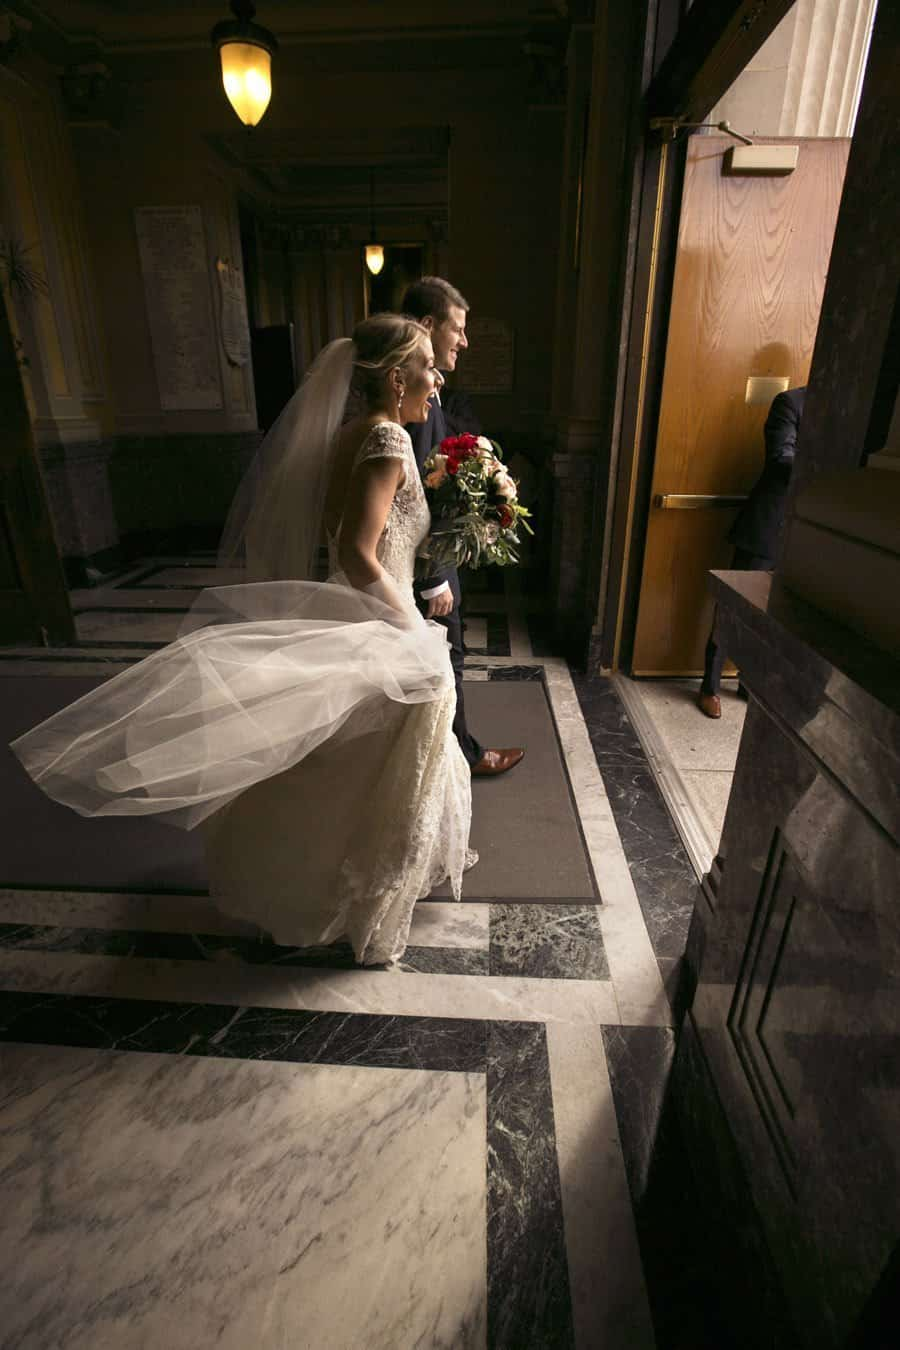 exiting their wedding ceremony in cleveland